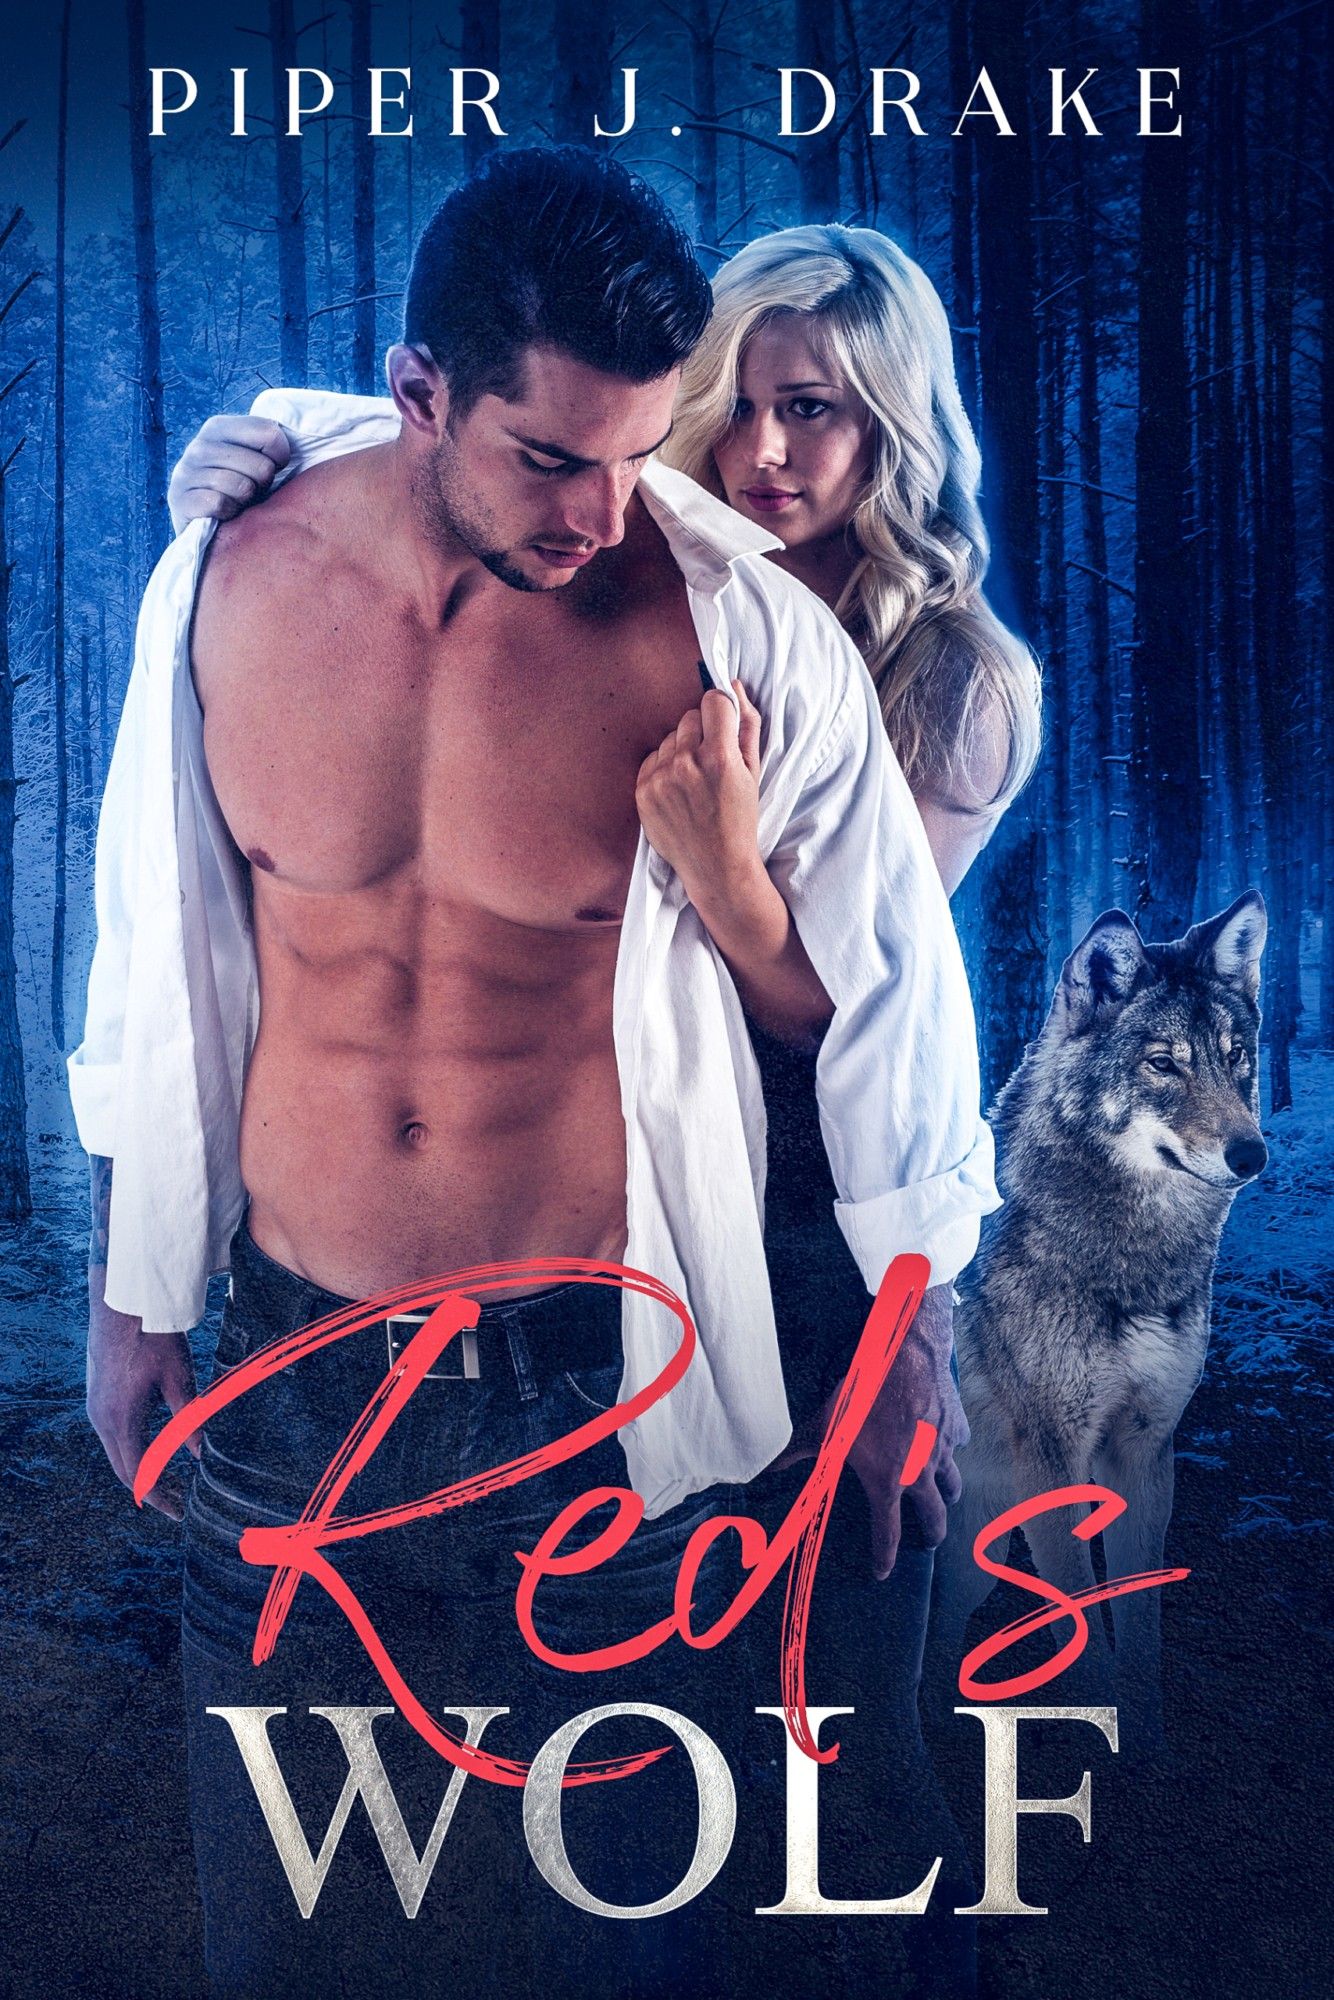 reds wolf by piper j drake